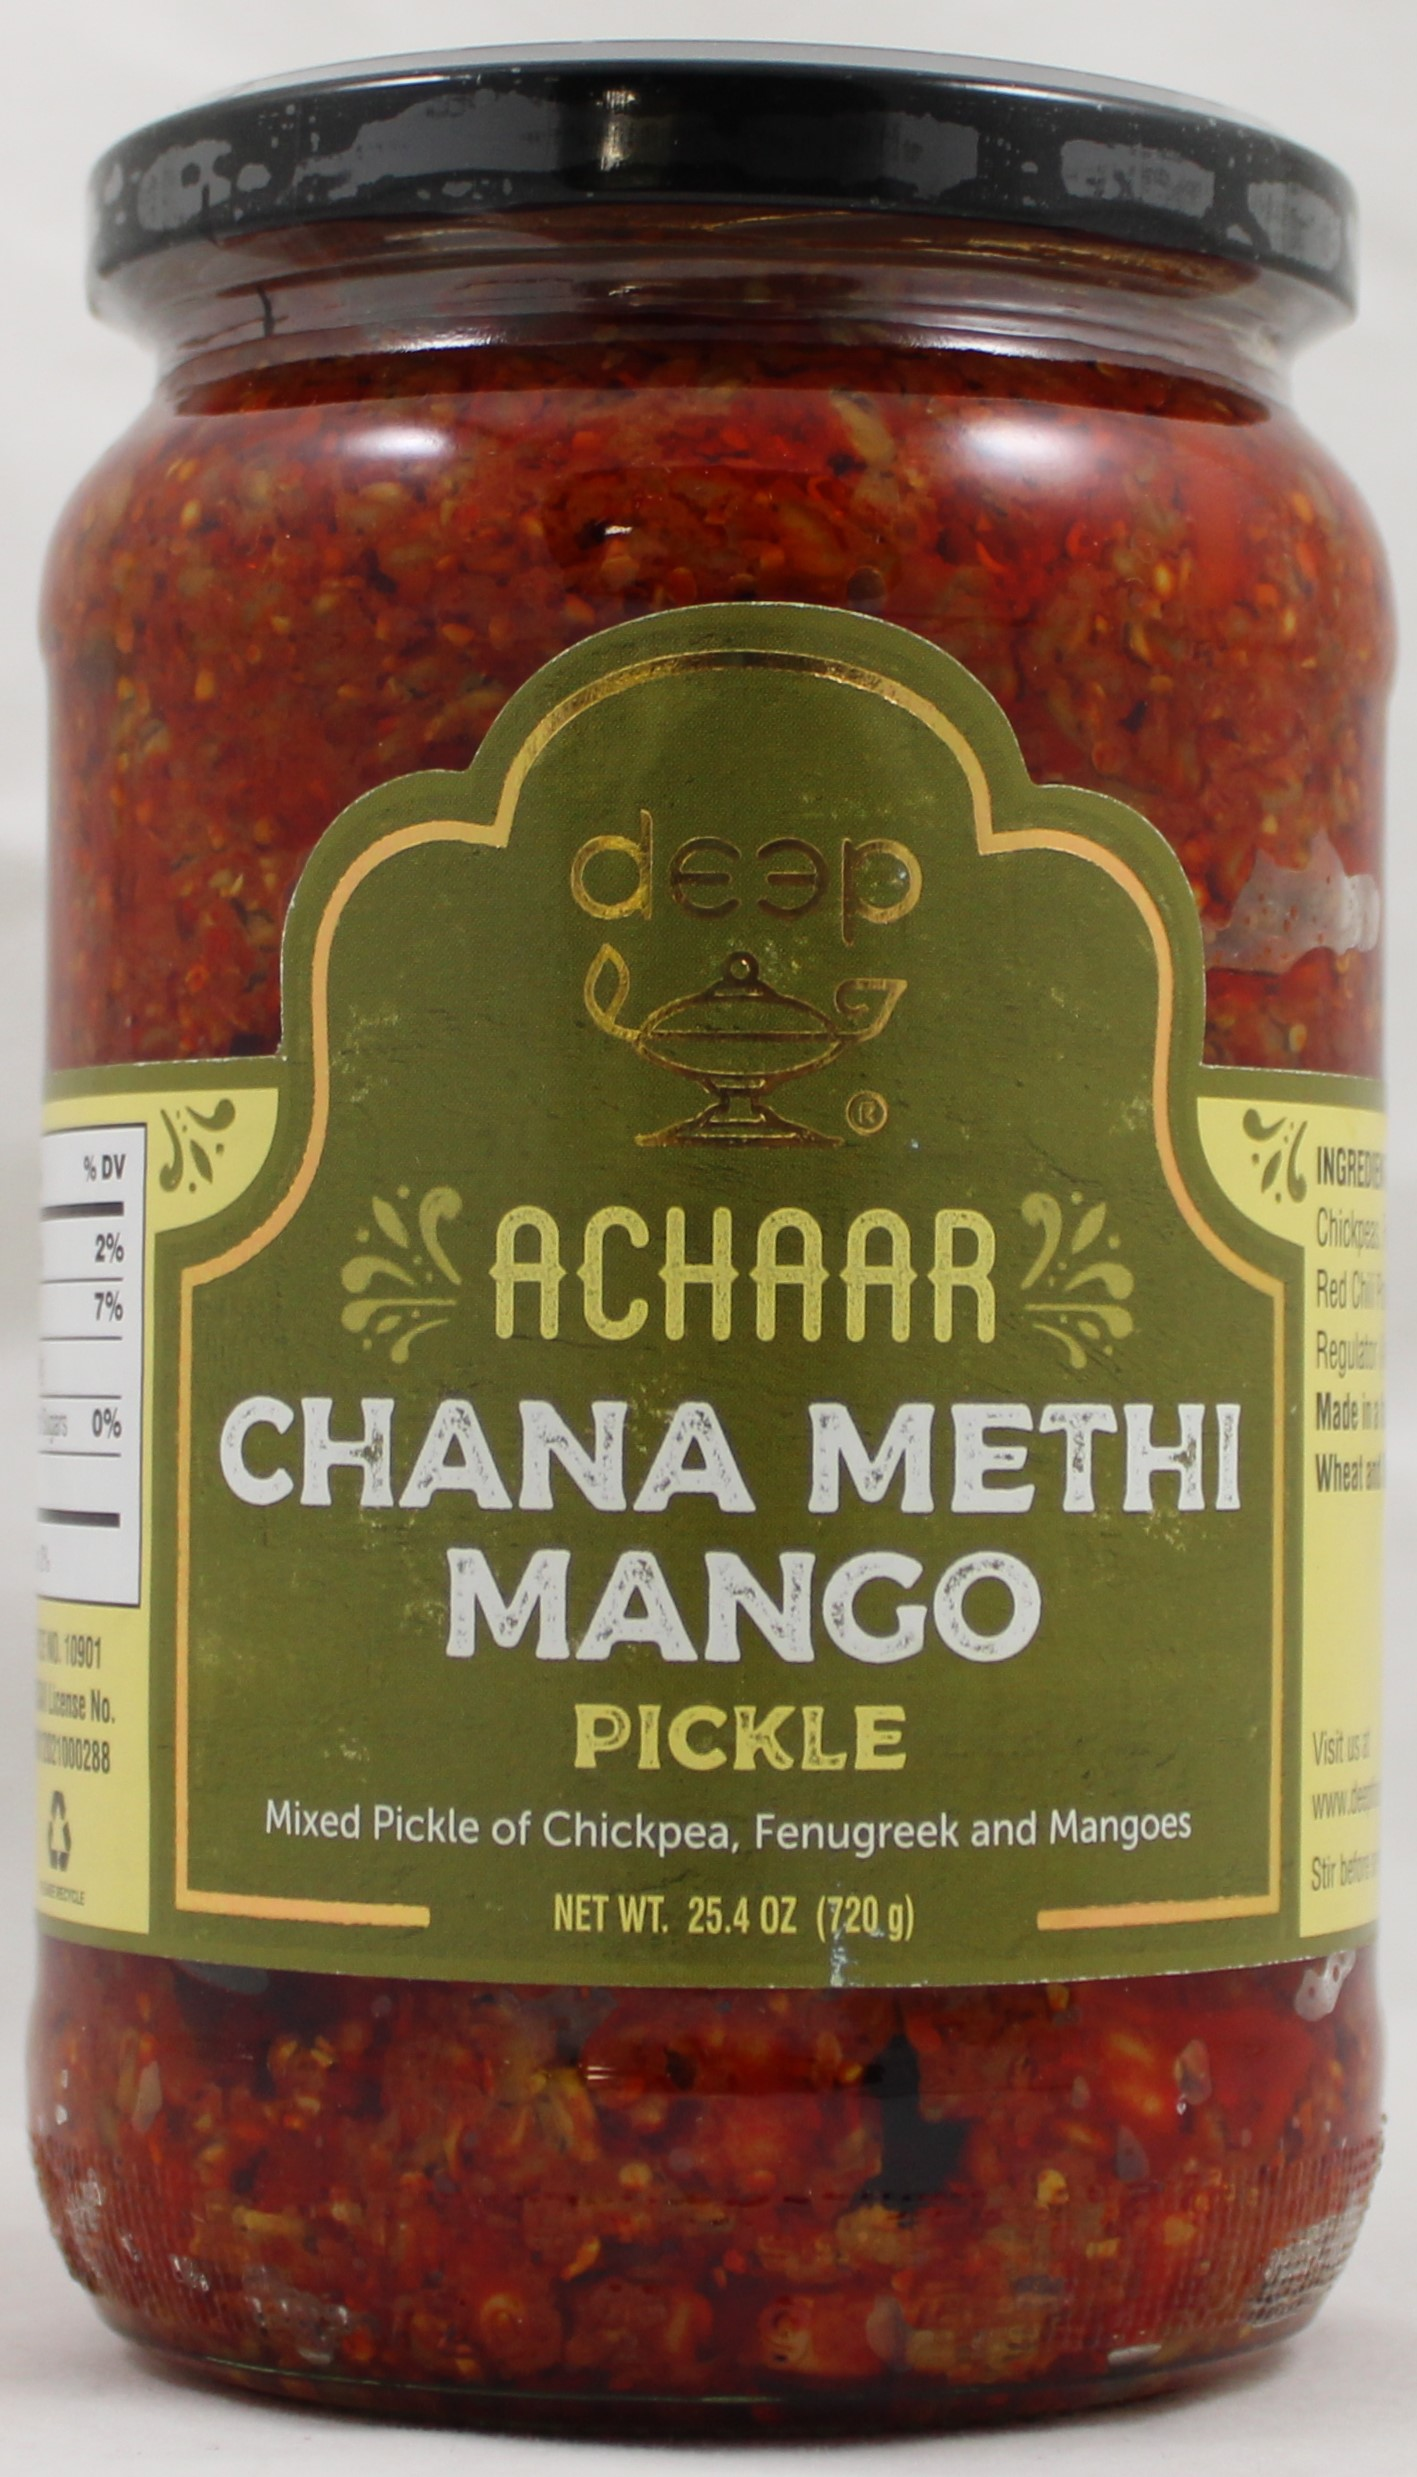 Chana Methi MangoPickle25.4 oz